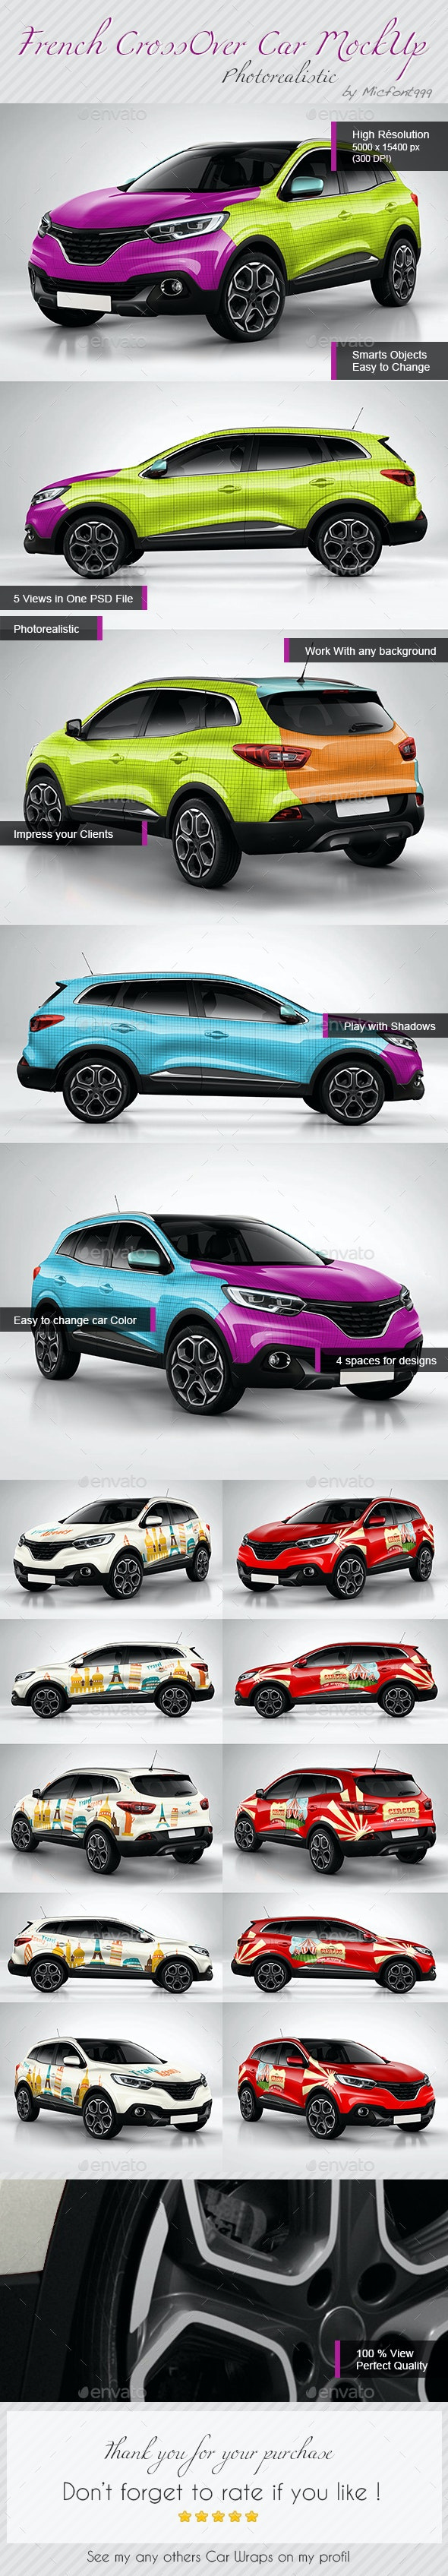 Photorealistic French Crossover car Wrap Mock-up - Vehicle Wraps Print